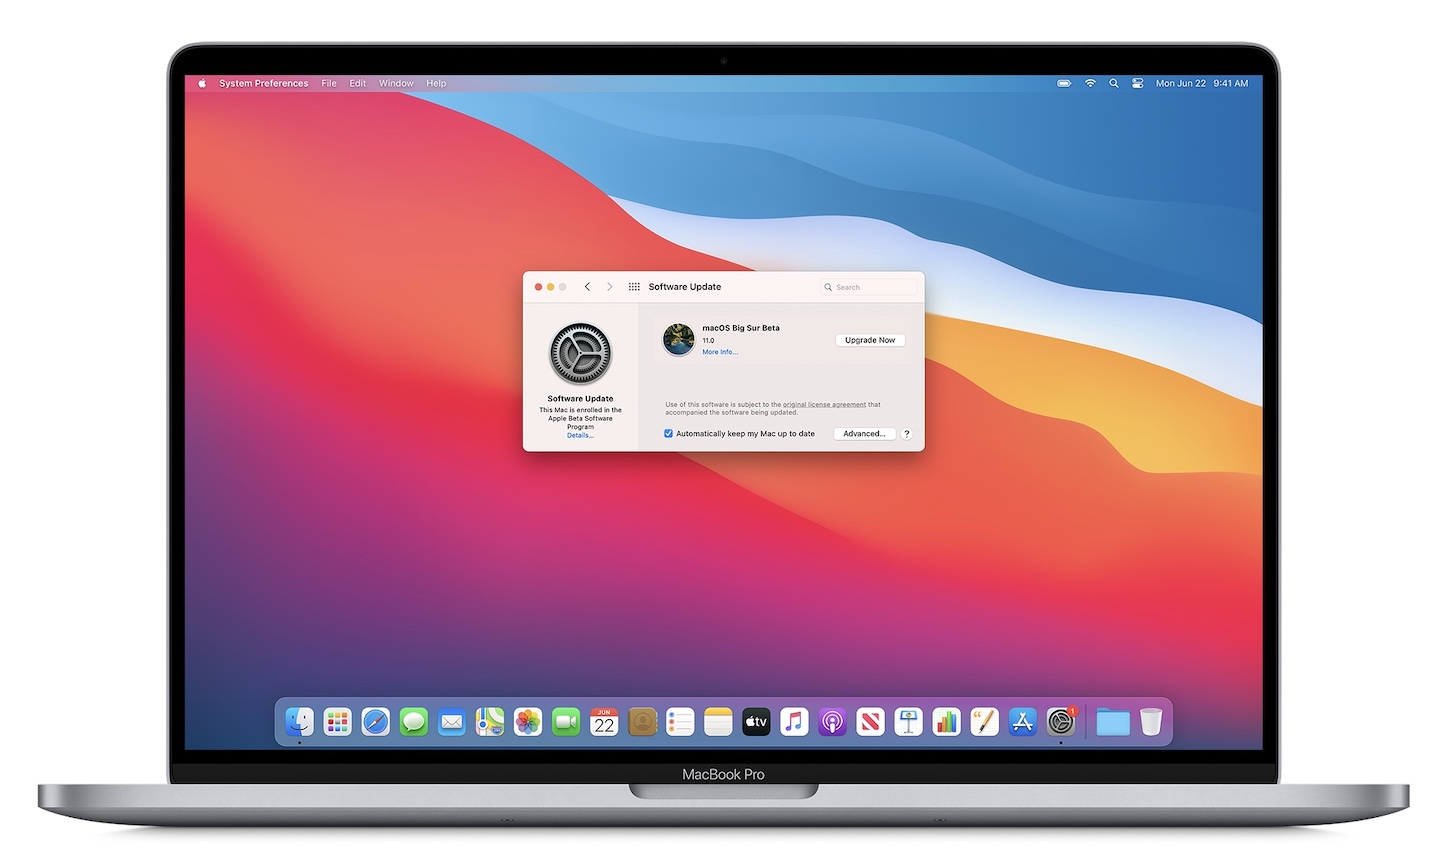 Back up your Mac being installing  macOS Big Sur Public beta 7